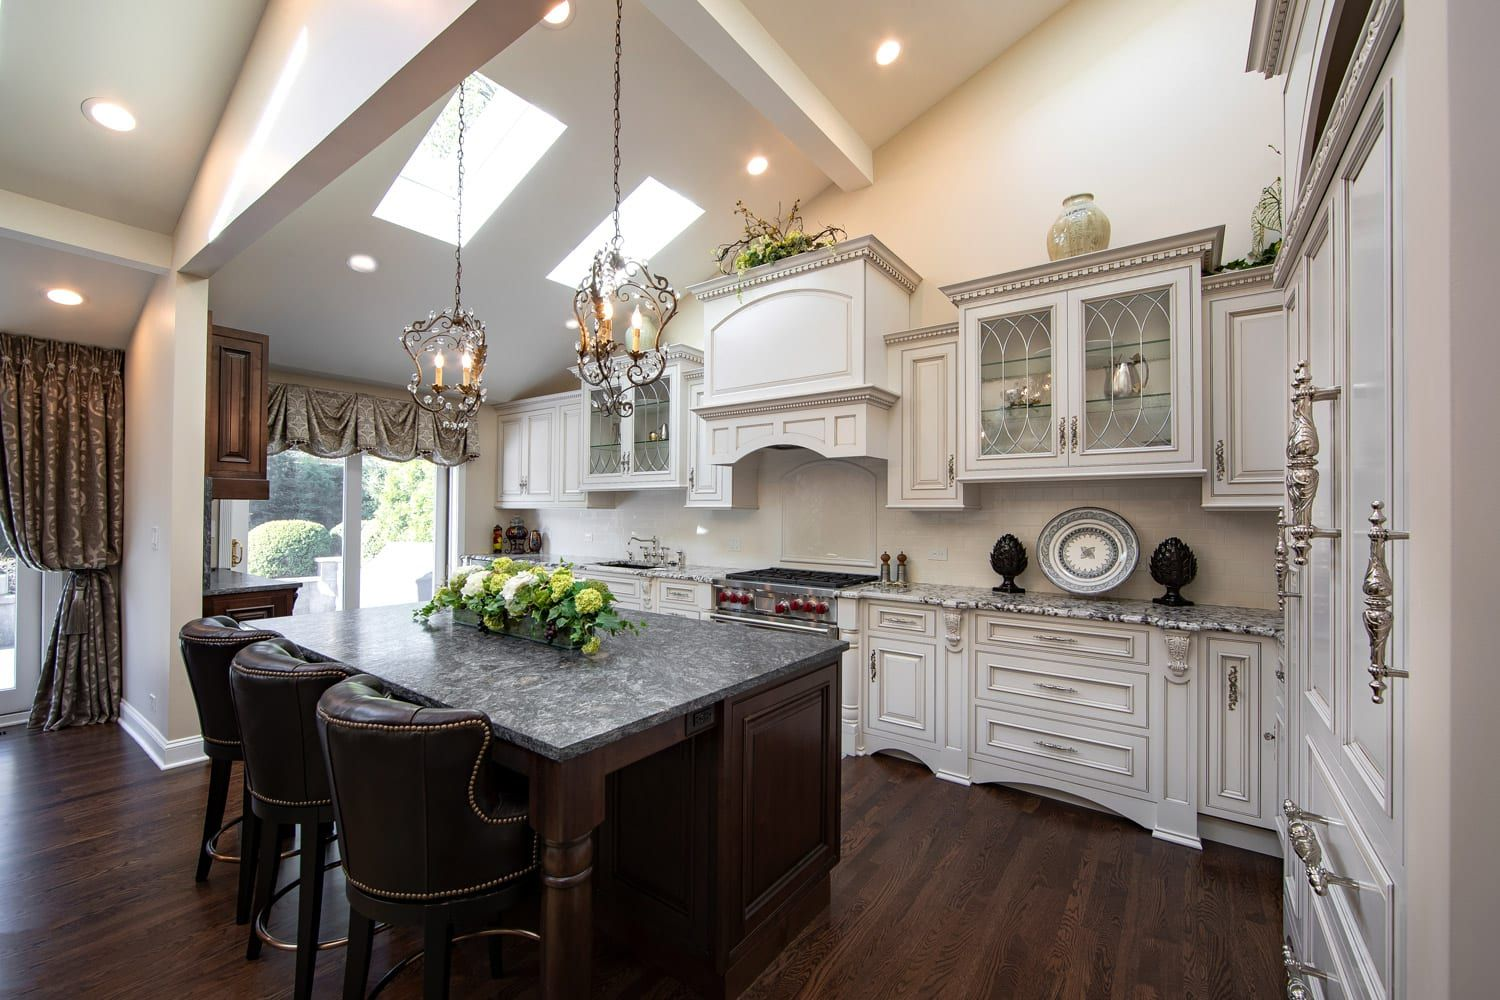 kitchen and bathroom remodeling in chicago in 2020 with